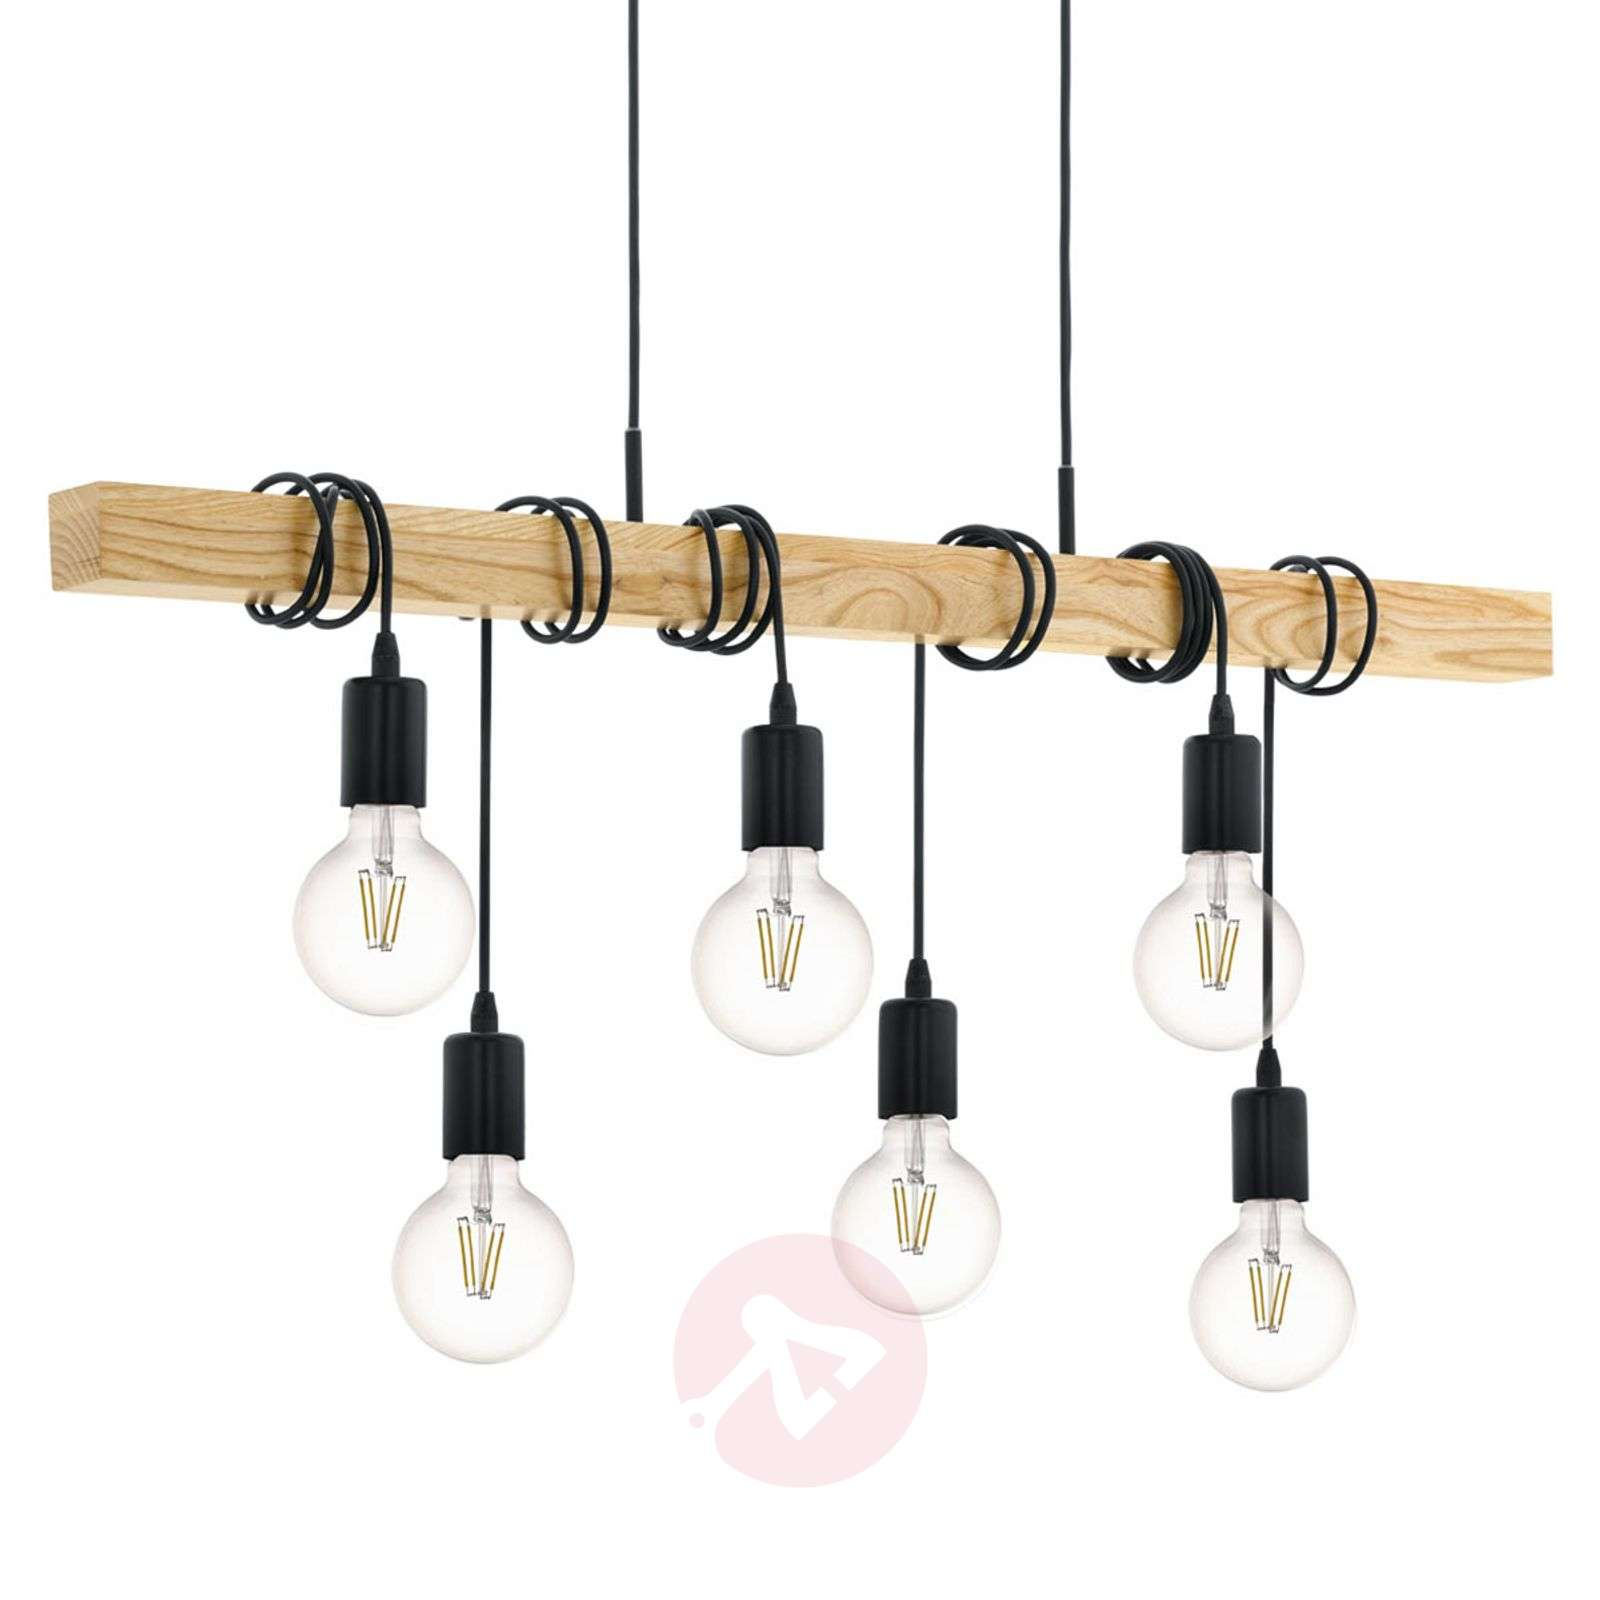 Hanglamp Townshend met hout 6-lamps-3032130-01